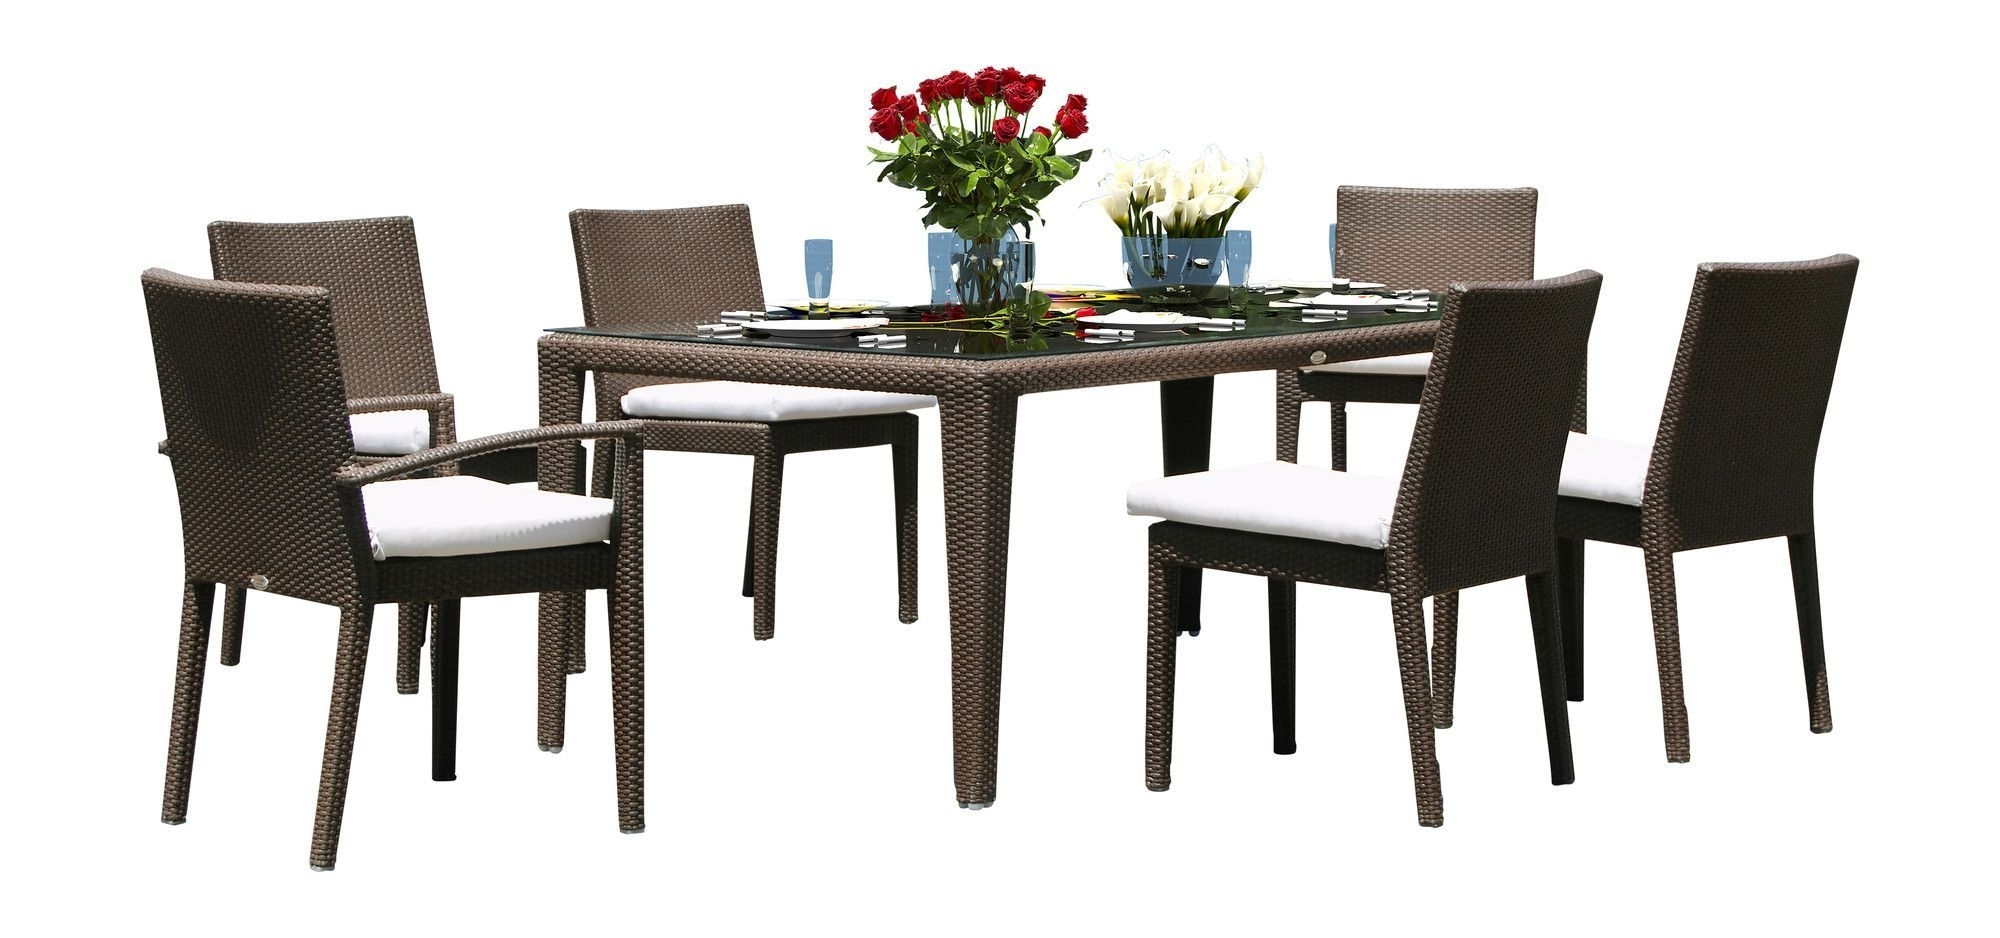 Outdoor Products And Products Pertaining To Chapleau Ii 7 Piece Extension Dining Tables With Side Chairs (View 20 of 25)